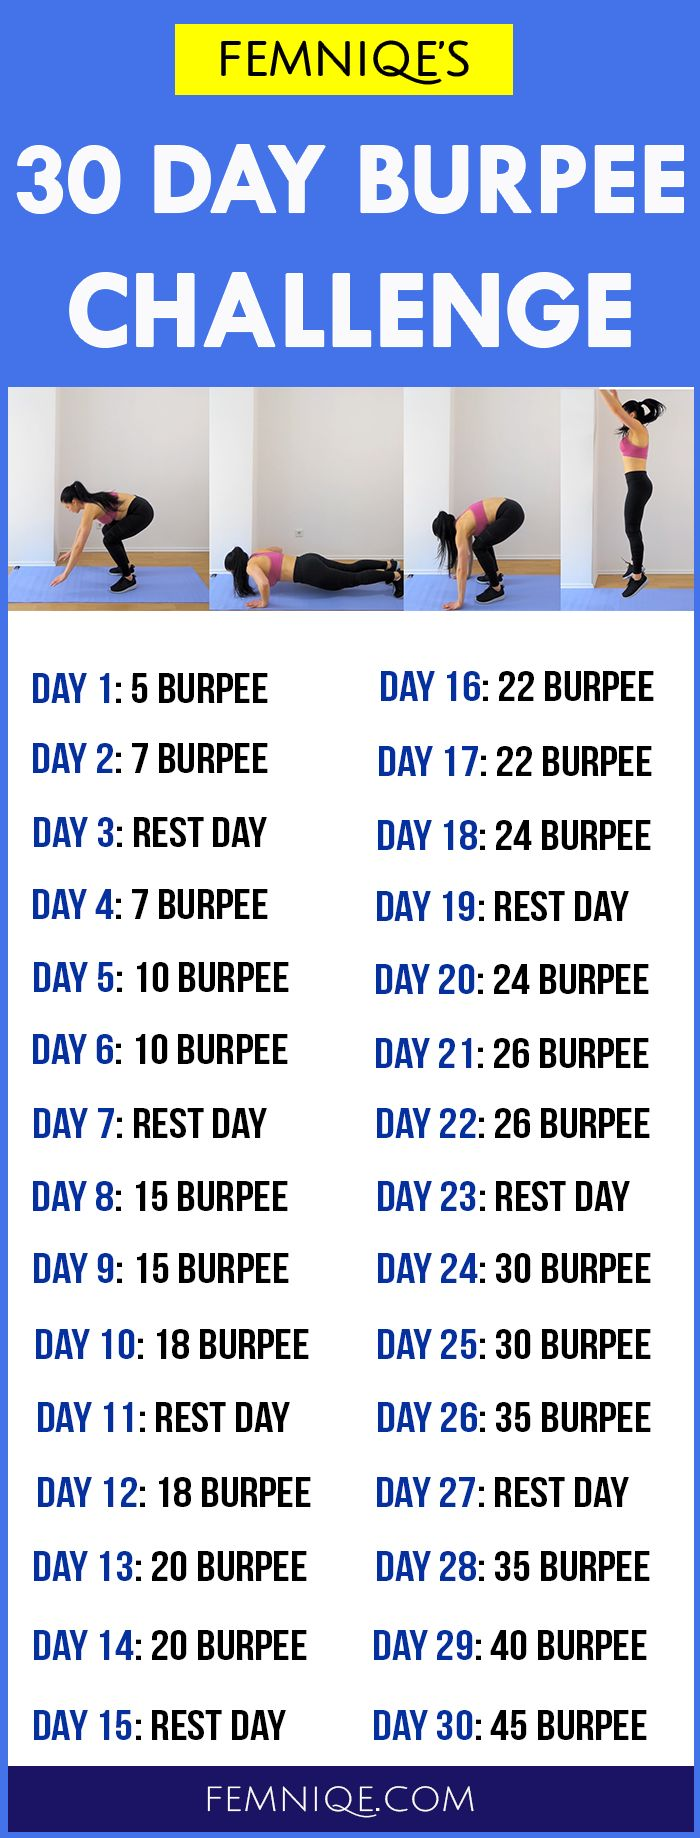 Give this 30 day burpee challenge a try for maximum fat loss - If you want a single workout that can melt fat fast then you should try burpee. This 30 day burpee challenge is beginner friendly and can be done by anyone who want to lose weight fast.